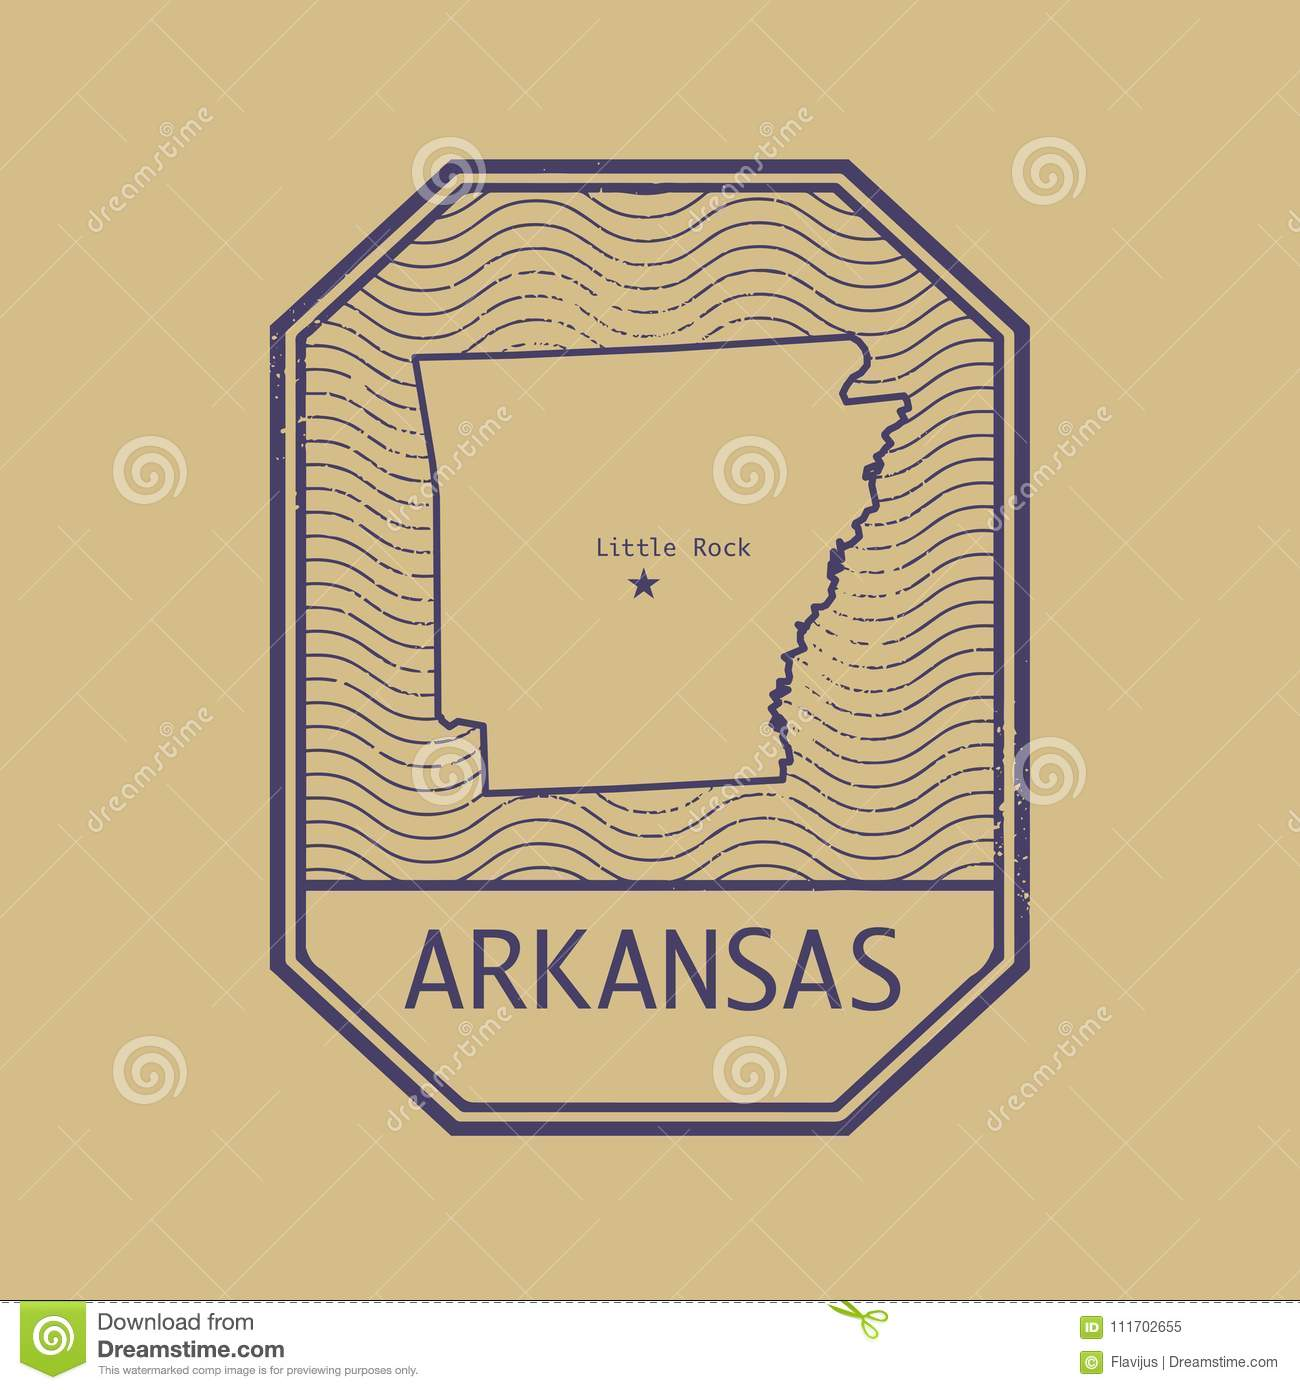 Arkansas United States Map.Stamp With The Name And Map Of Arkansas United States Stock Vector